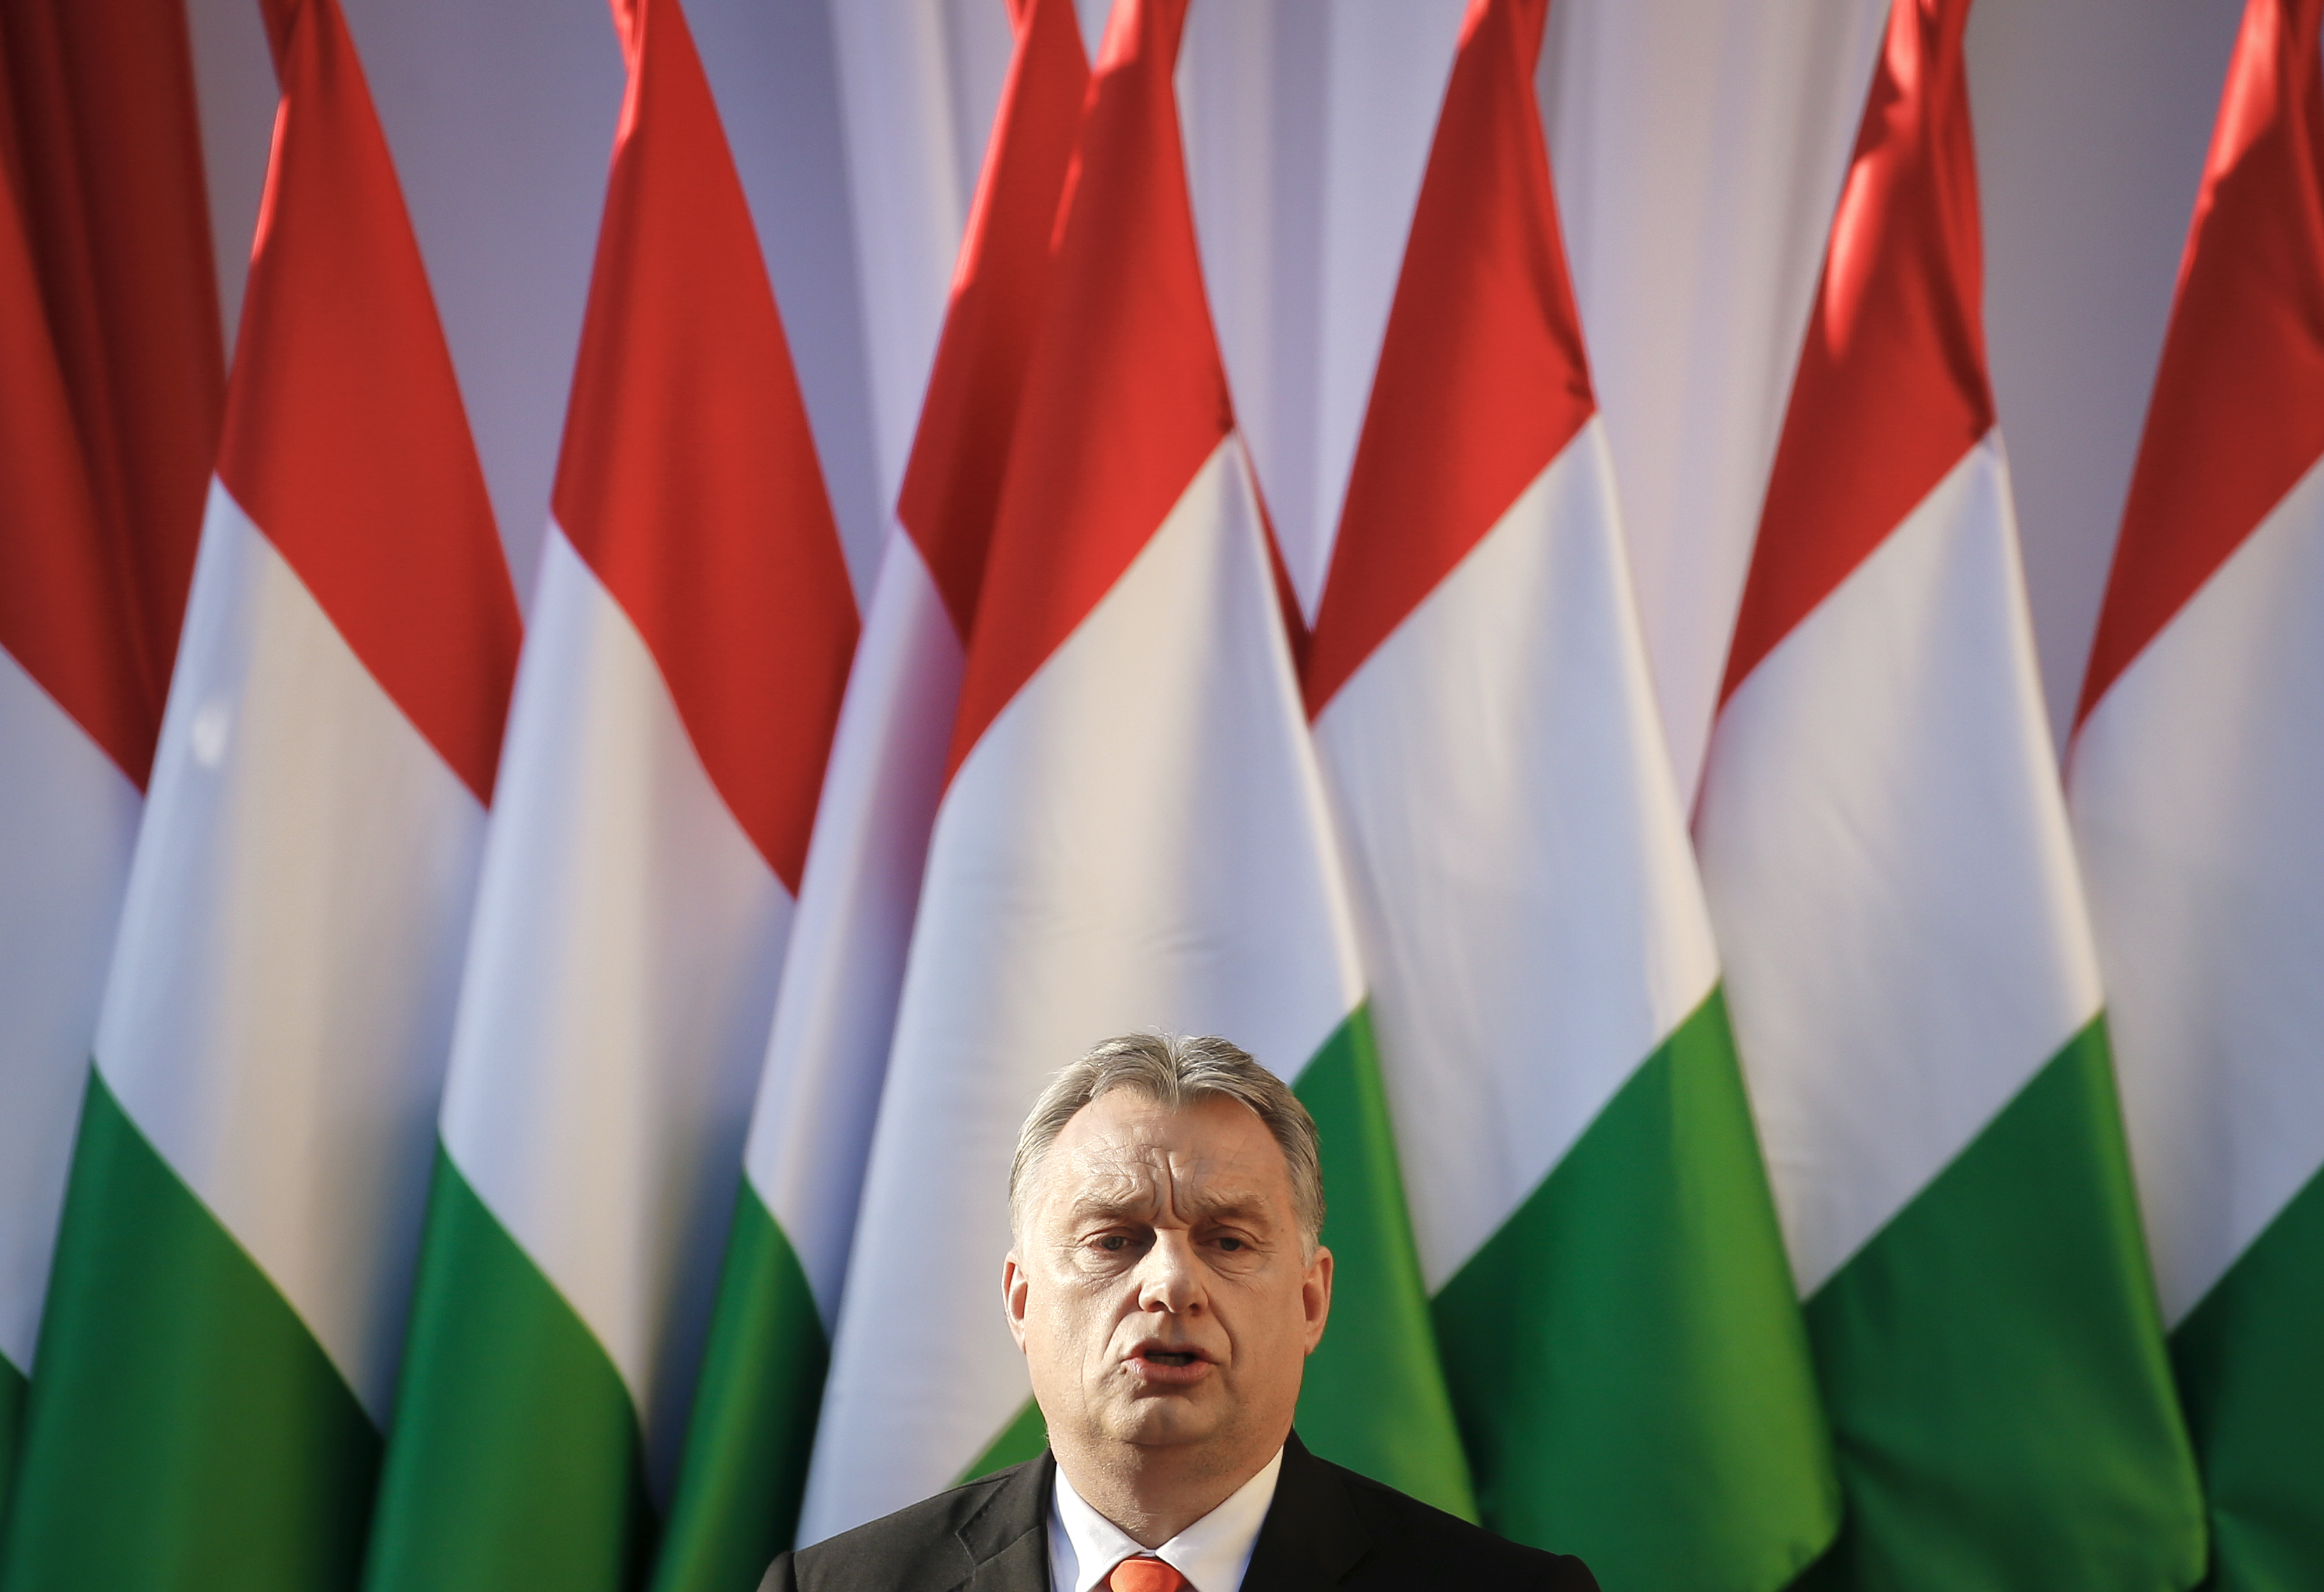 FILE - In this Friday, April 6, 2018 file photo Hungary's Prime Minister Viktor Orban speaks during the final electoral rally of his Fidesz party in Szekesfehervar, Hungary.